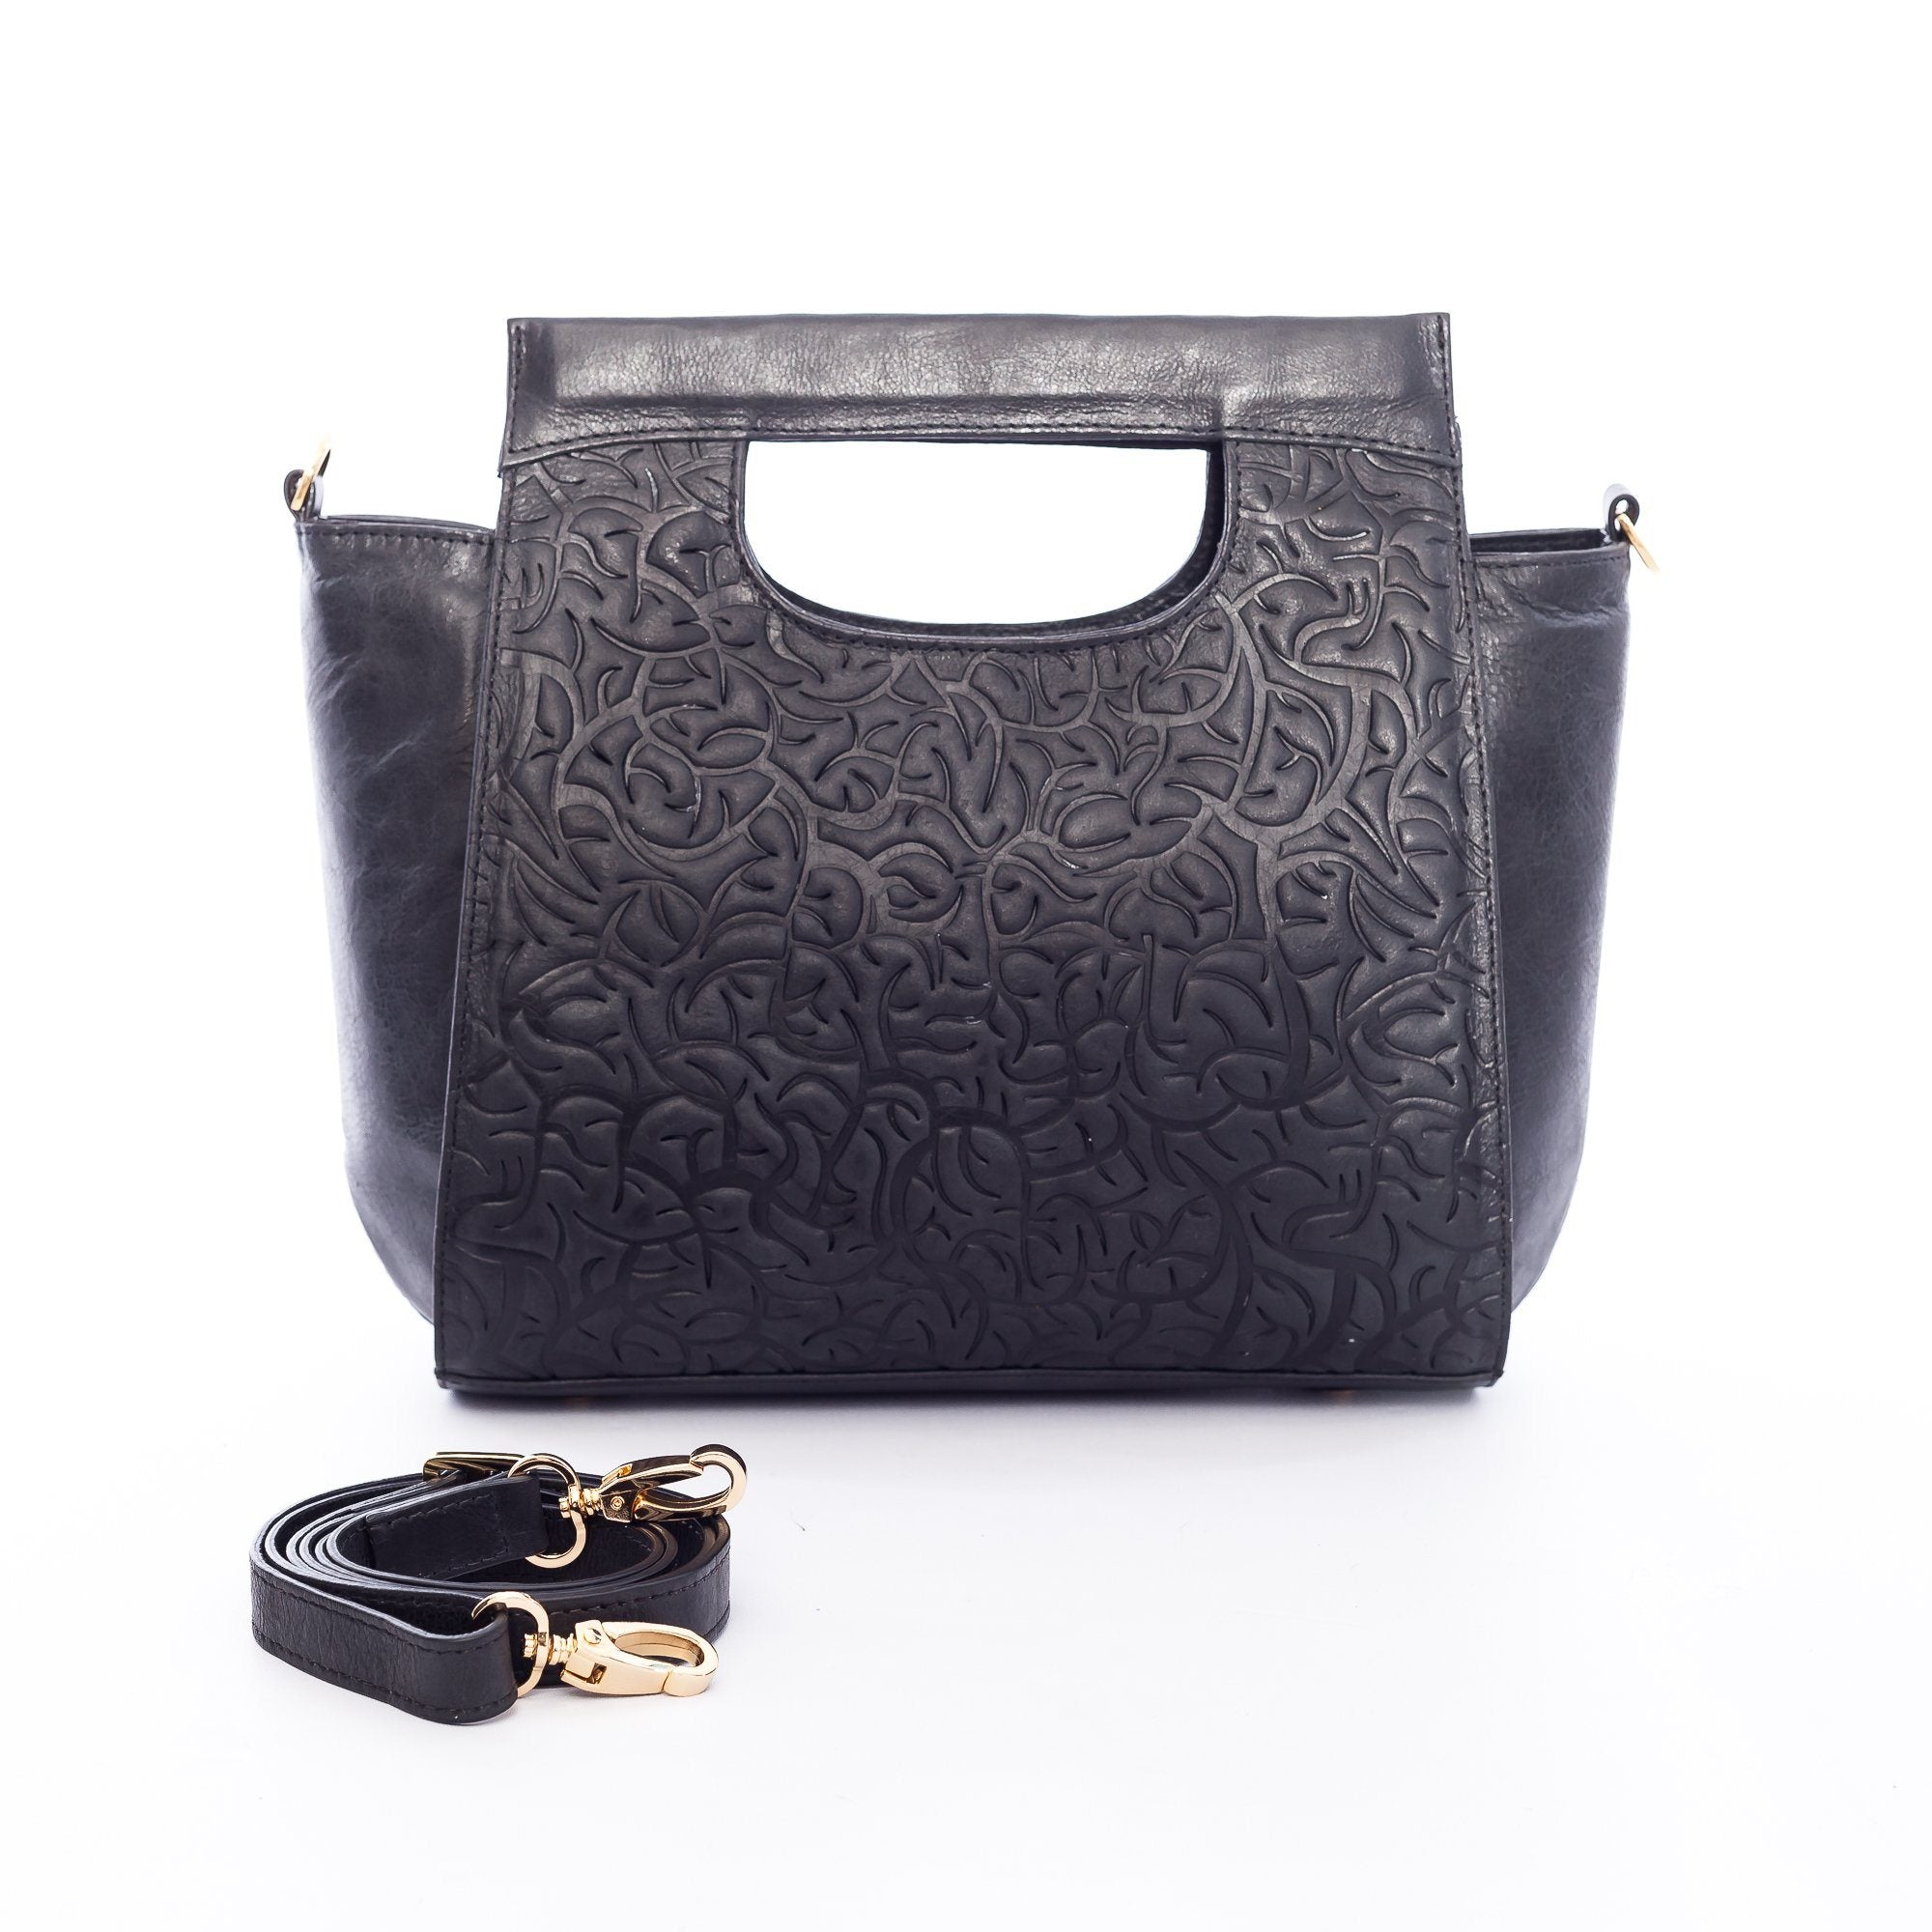 Fiorella Small Shoulder Bag - The Gaspy Collection